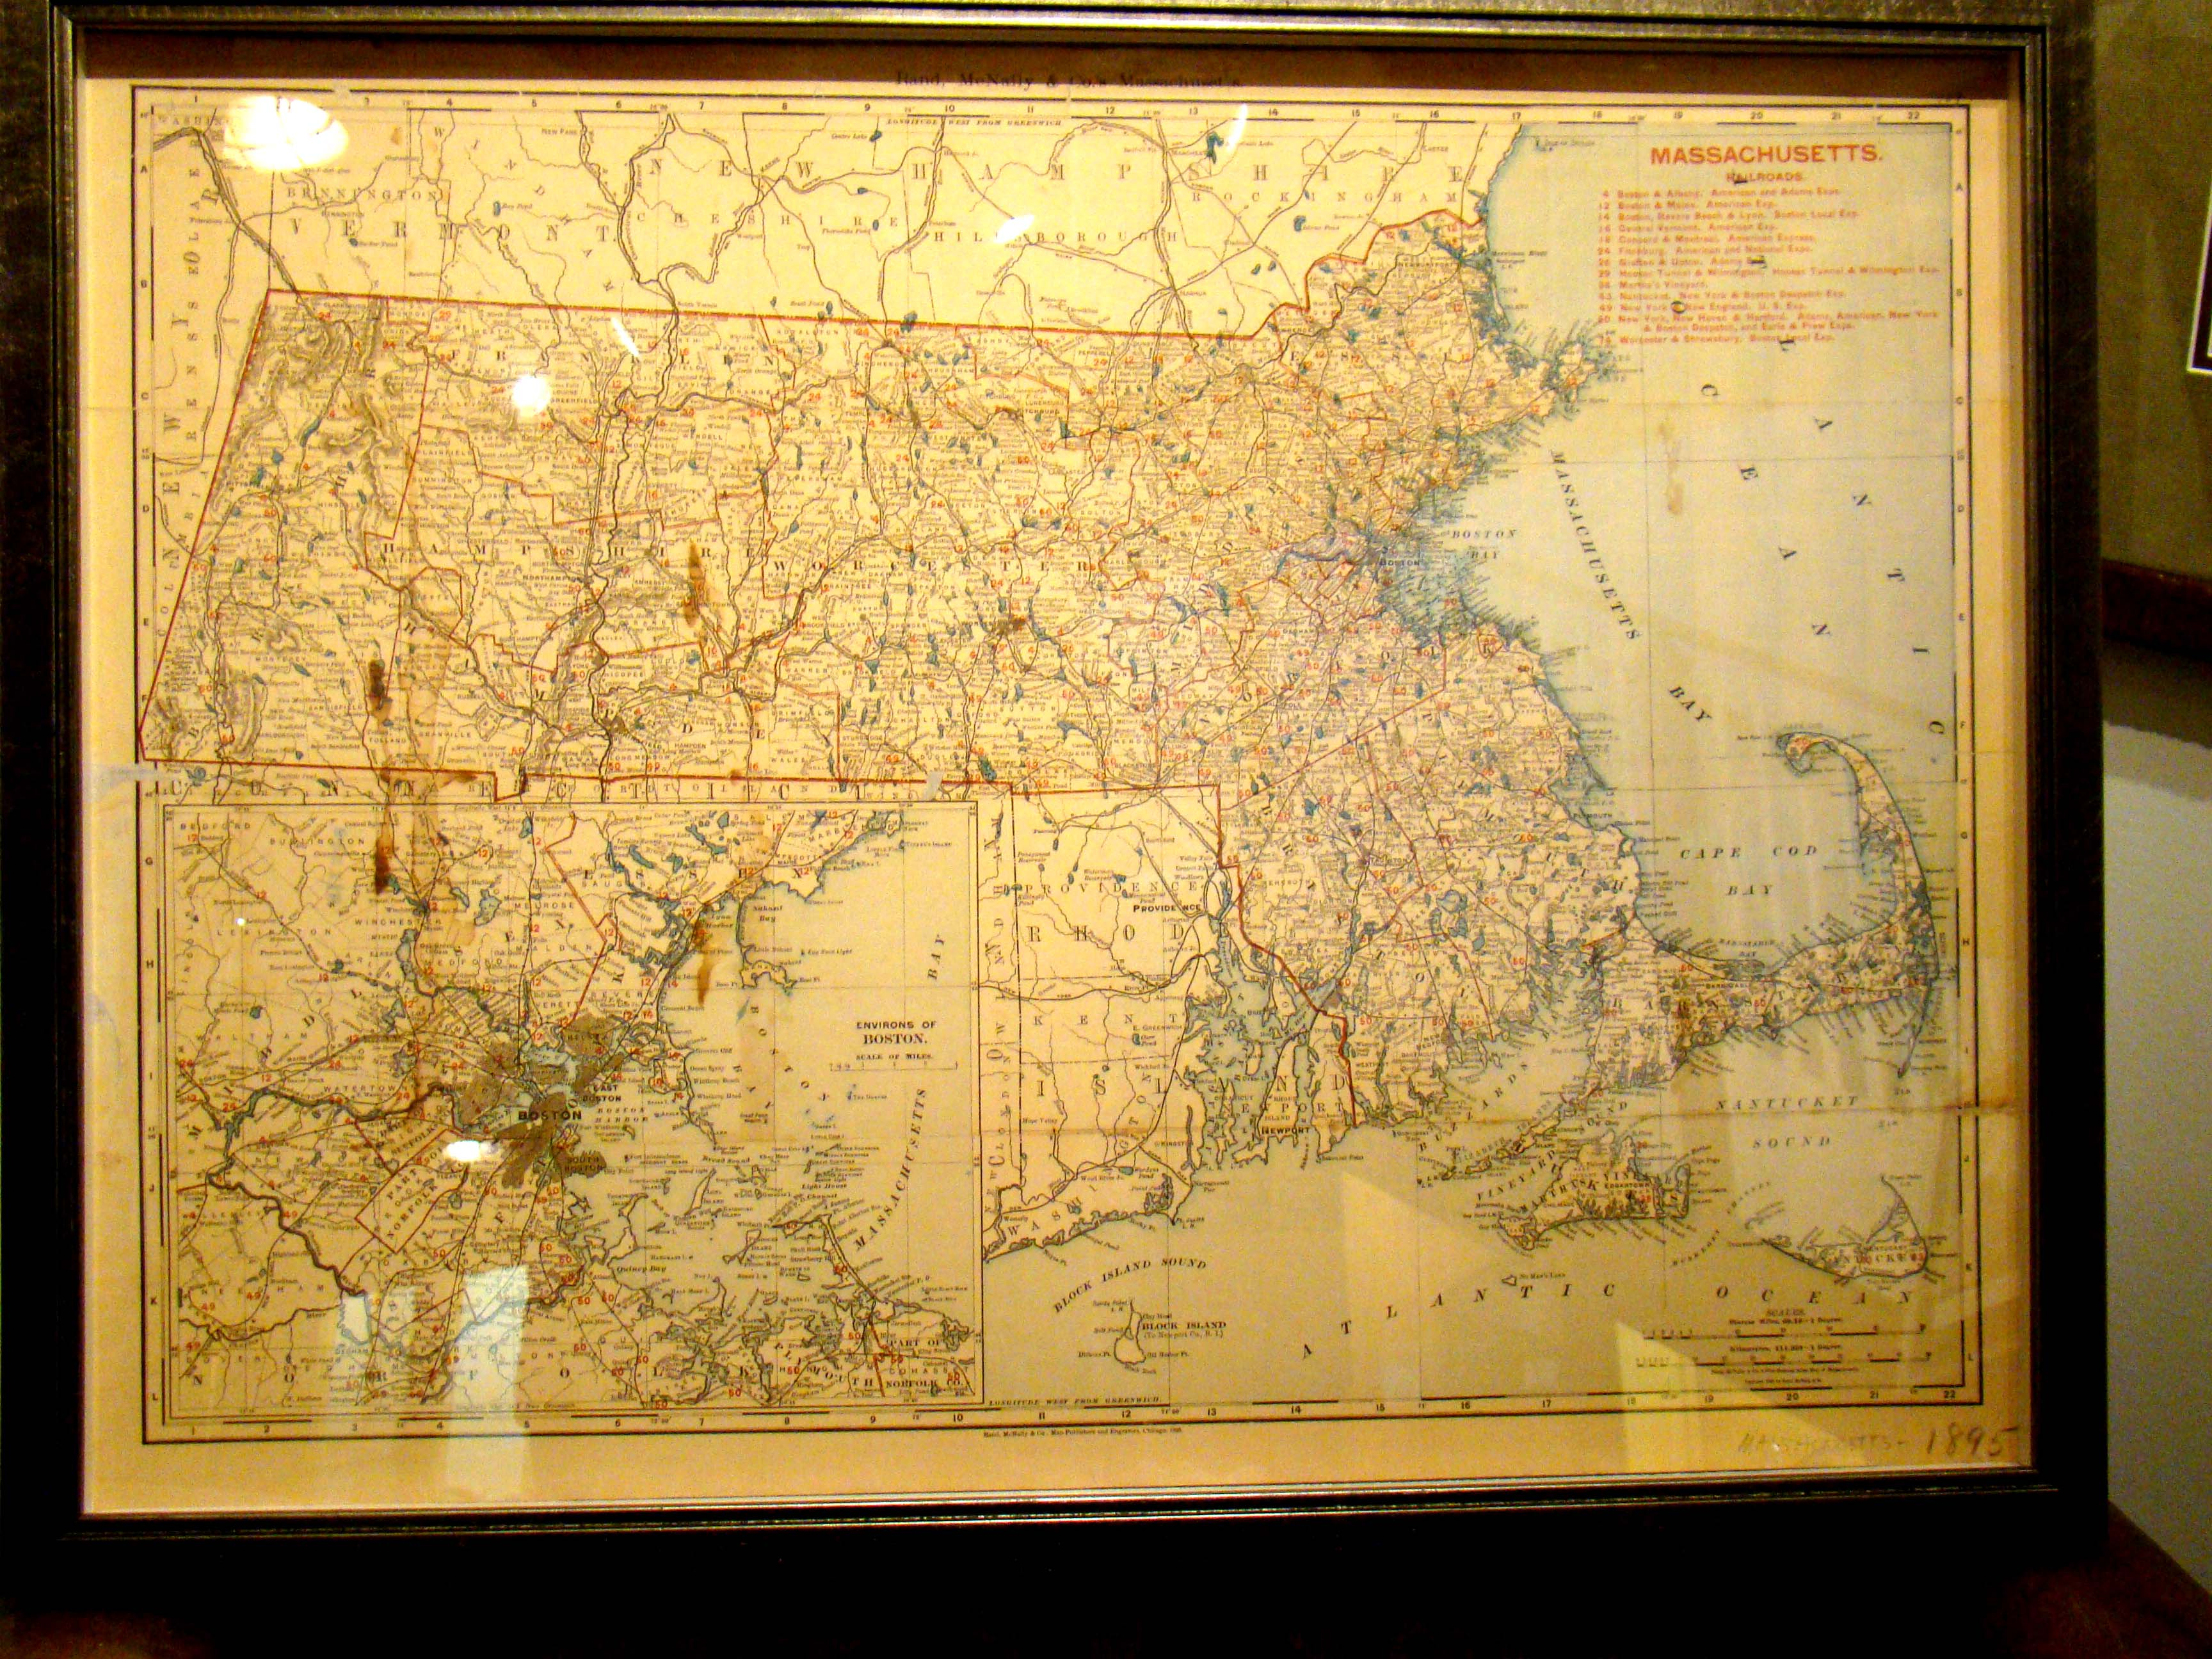 click to view detailed description of A vintage Map of Massachusetts printed in 1895 by Rand McNally